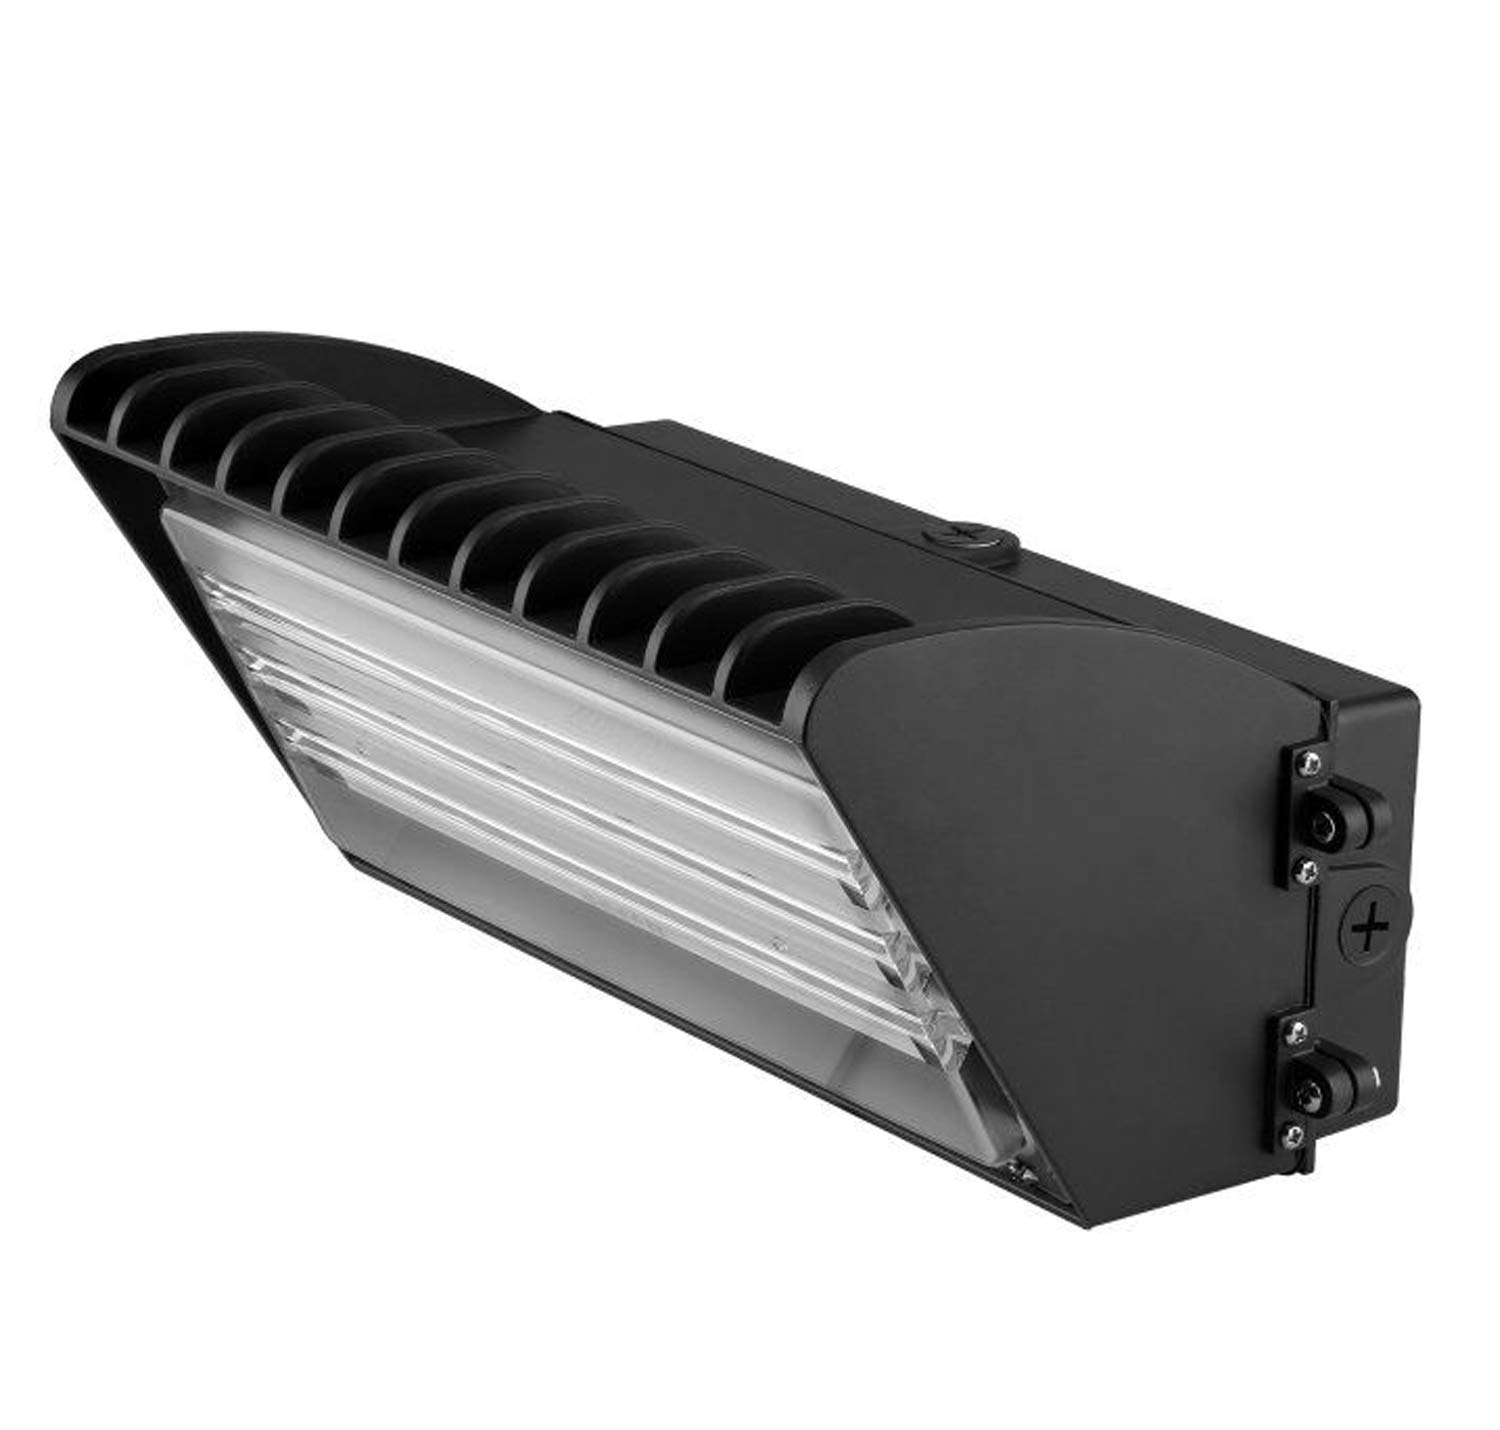 1000LED LED Wall Pack Light, 70W 7,200Lm, 600W HPS/HID Eq., Daylight White 5000K Waterproof Outdoor Wallpack Lighting